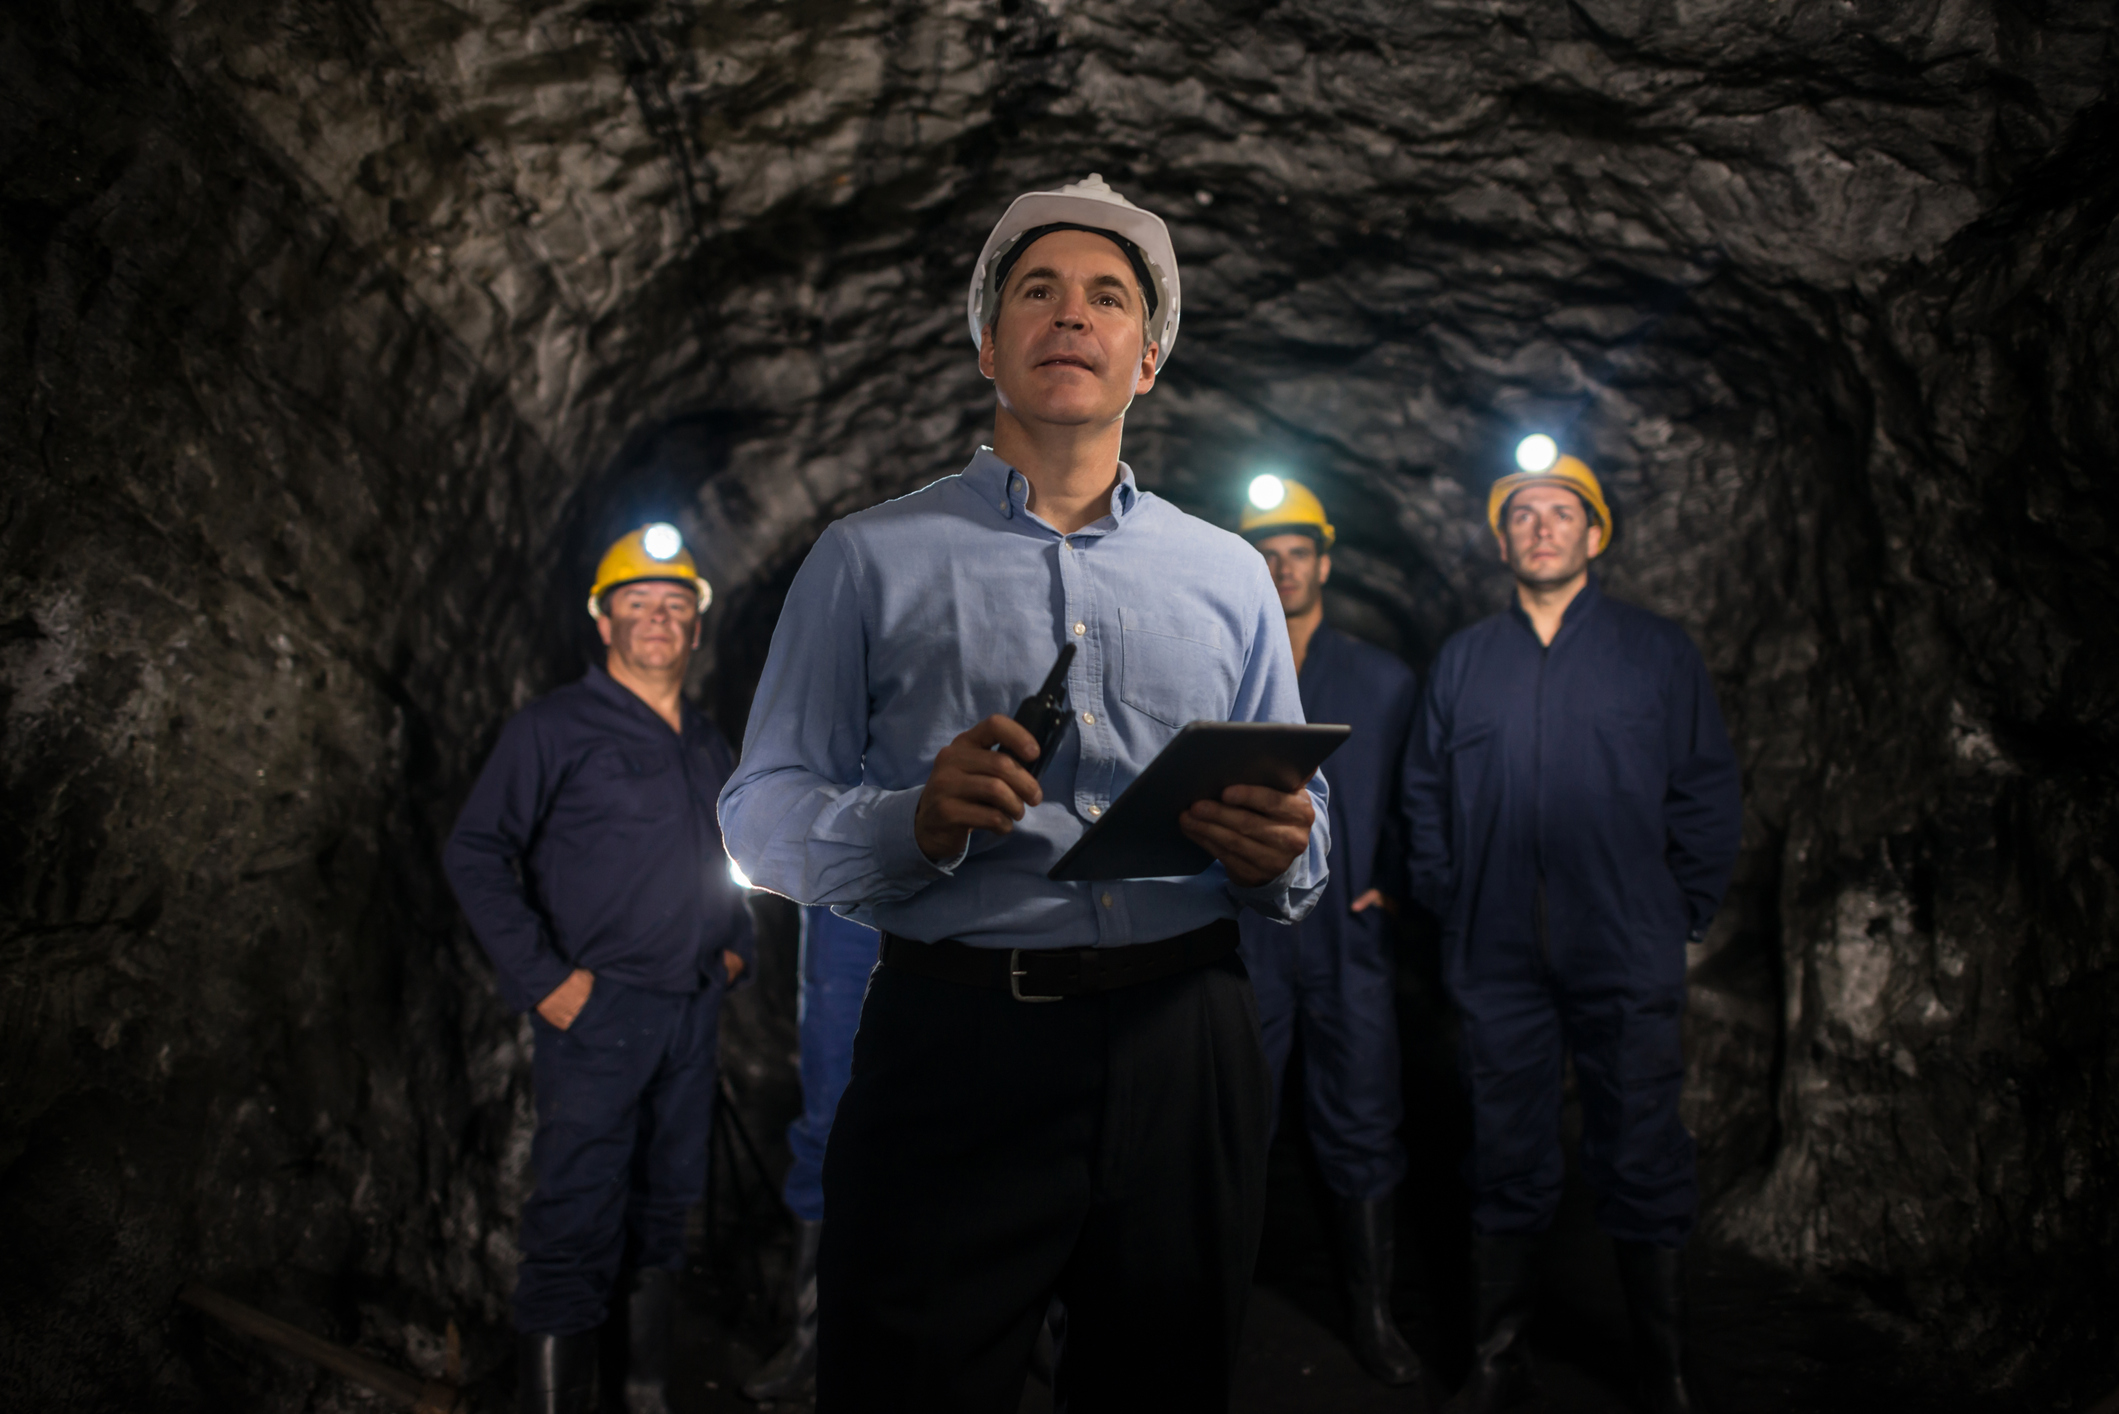 Engineer leading a group of miners